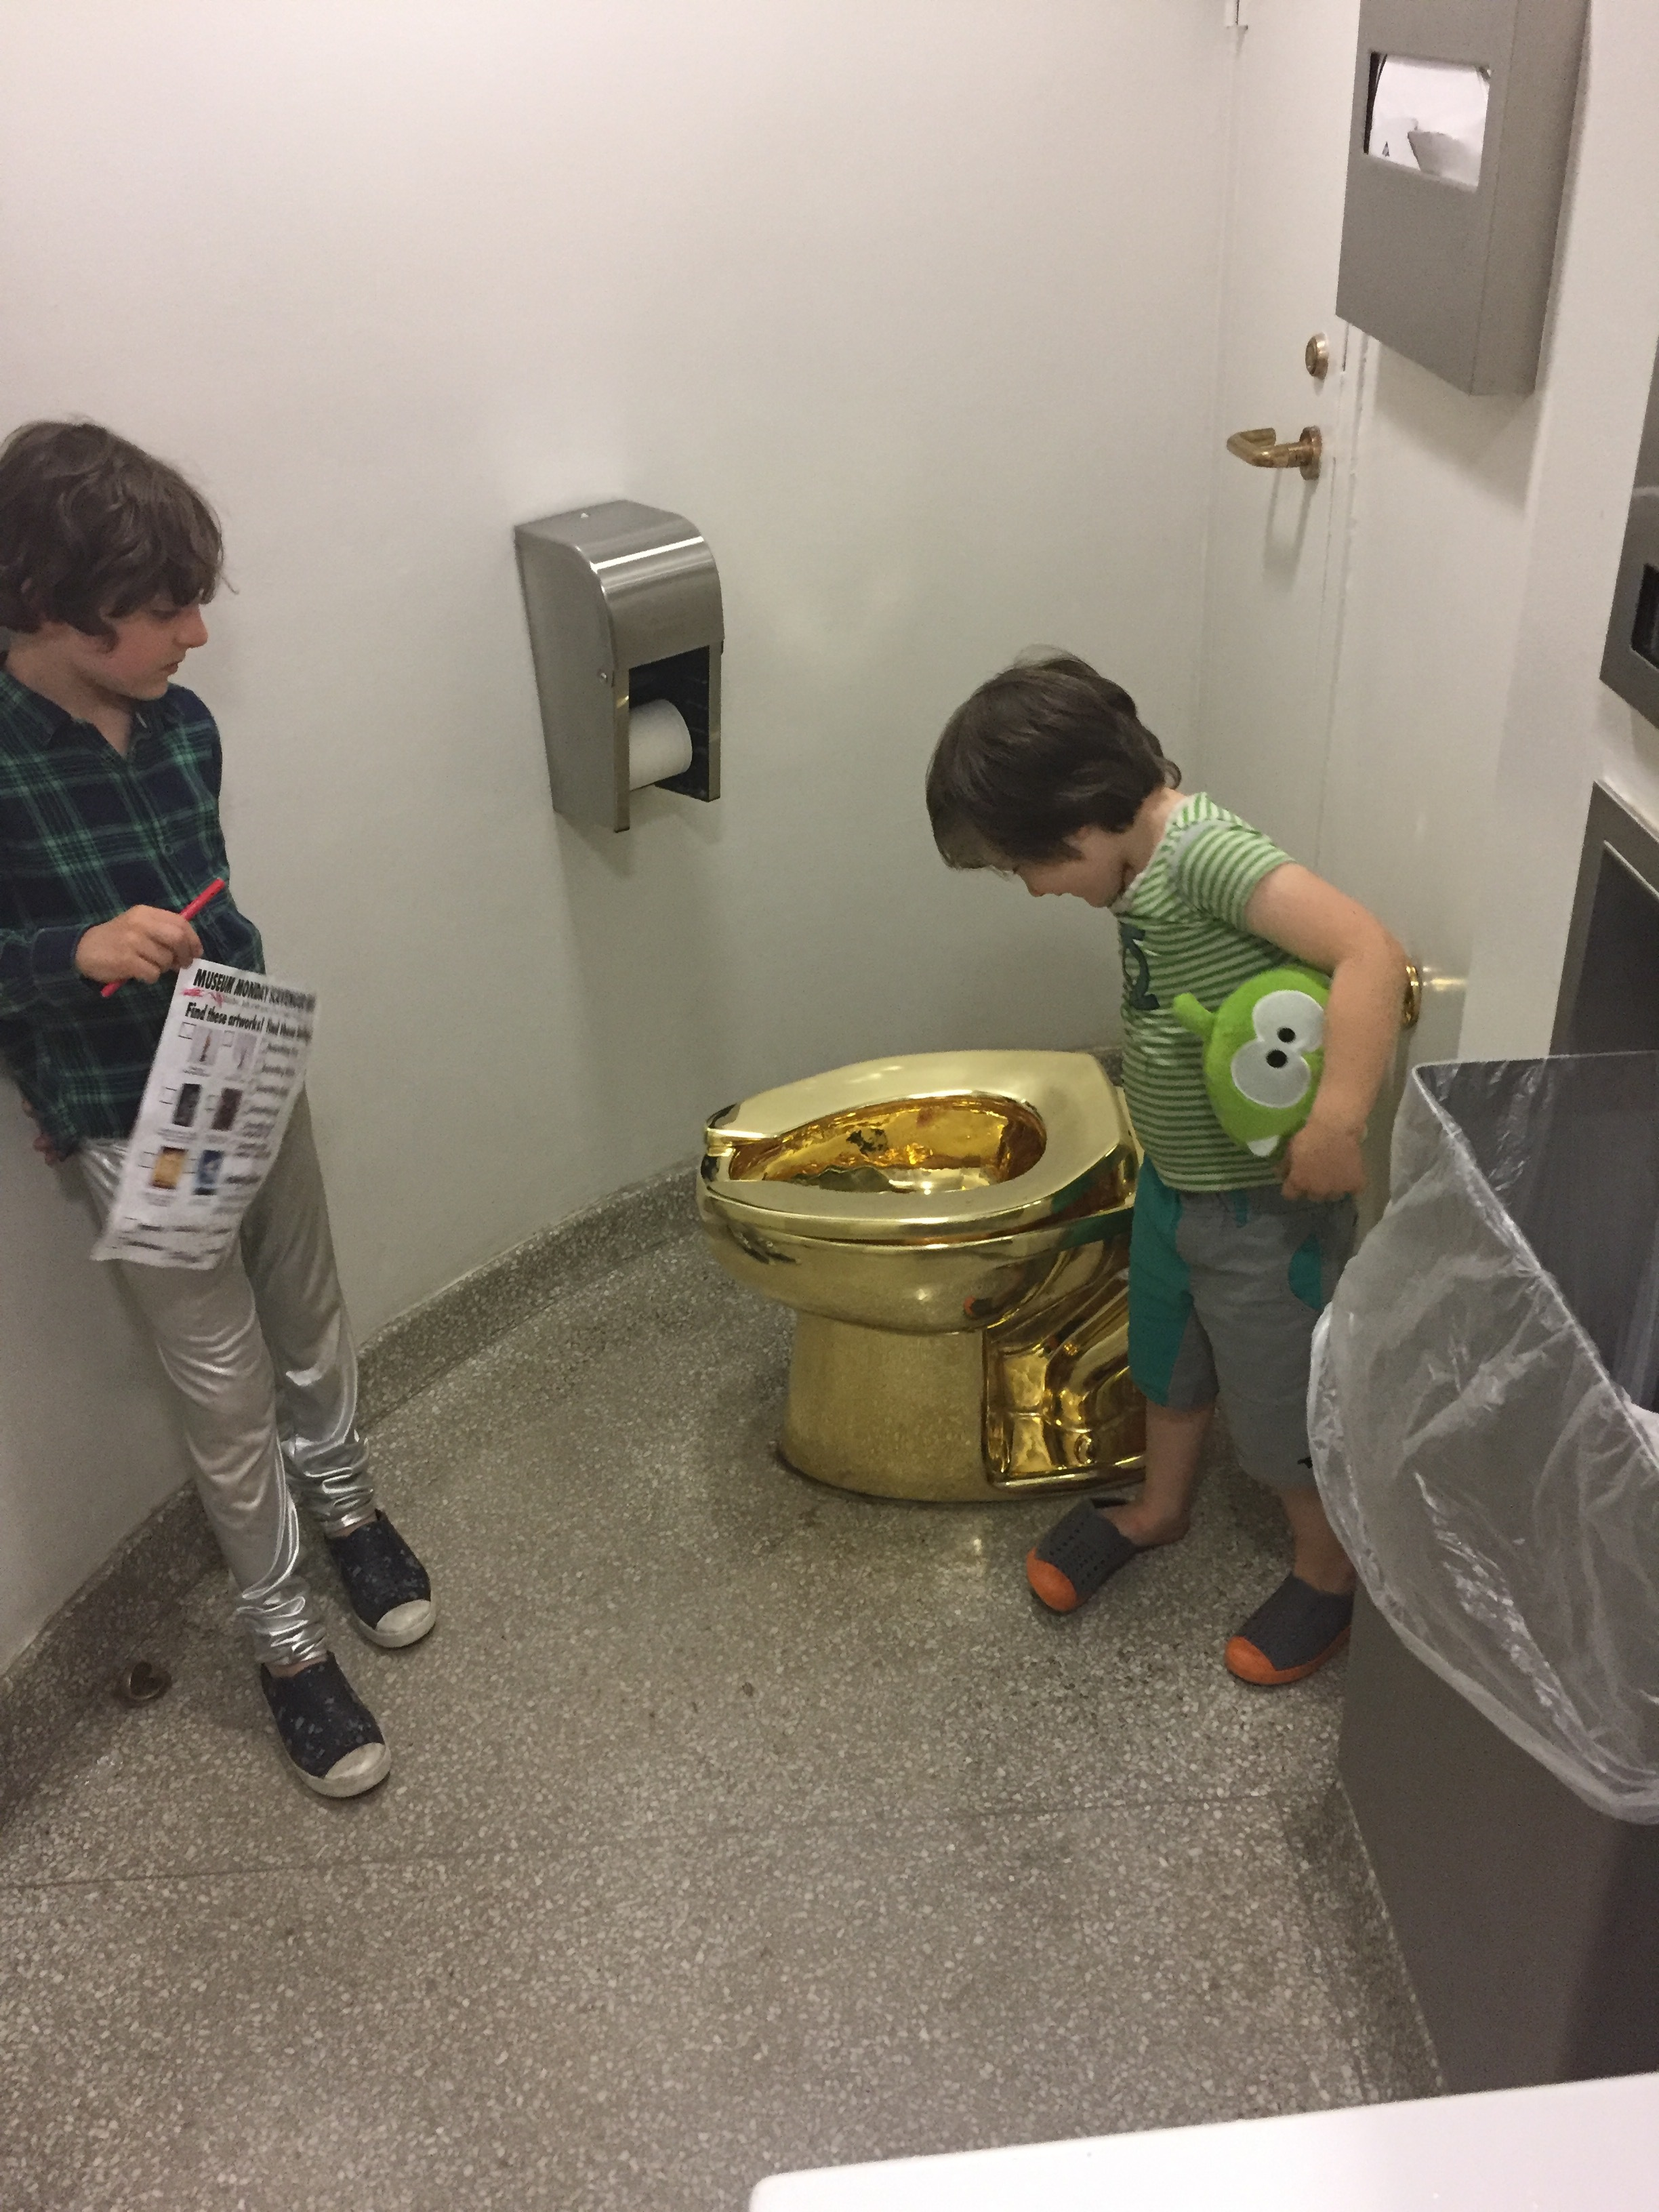 One thing that certainly surprised the kids: Maurizio Cattelan's gold toilet called America.